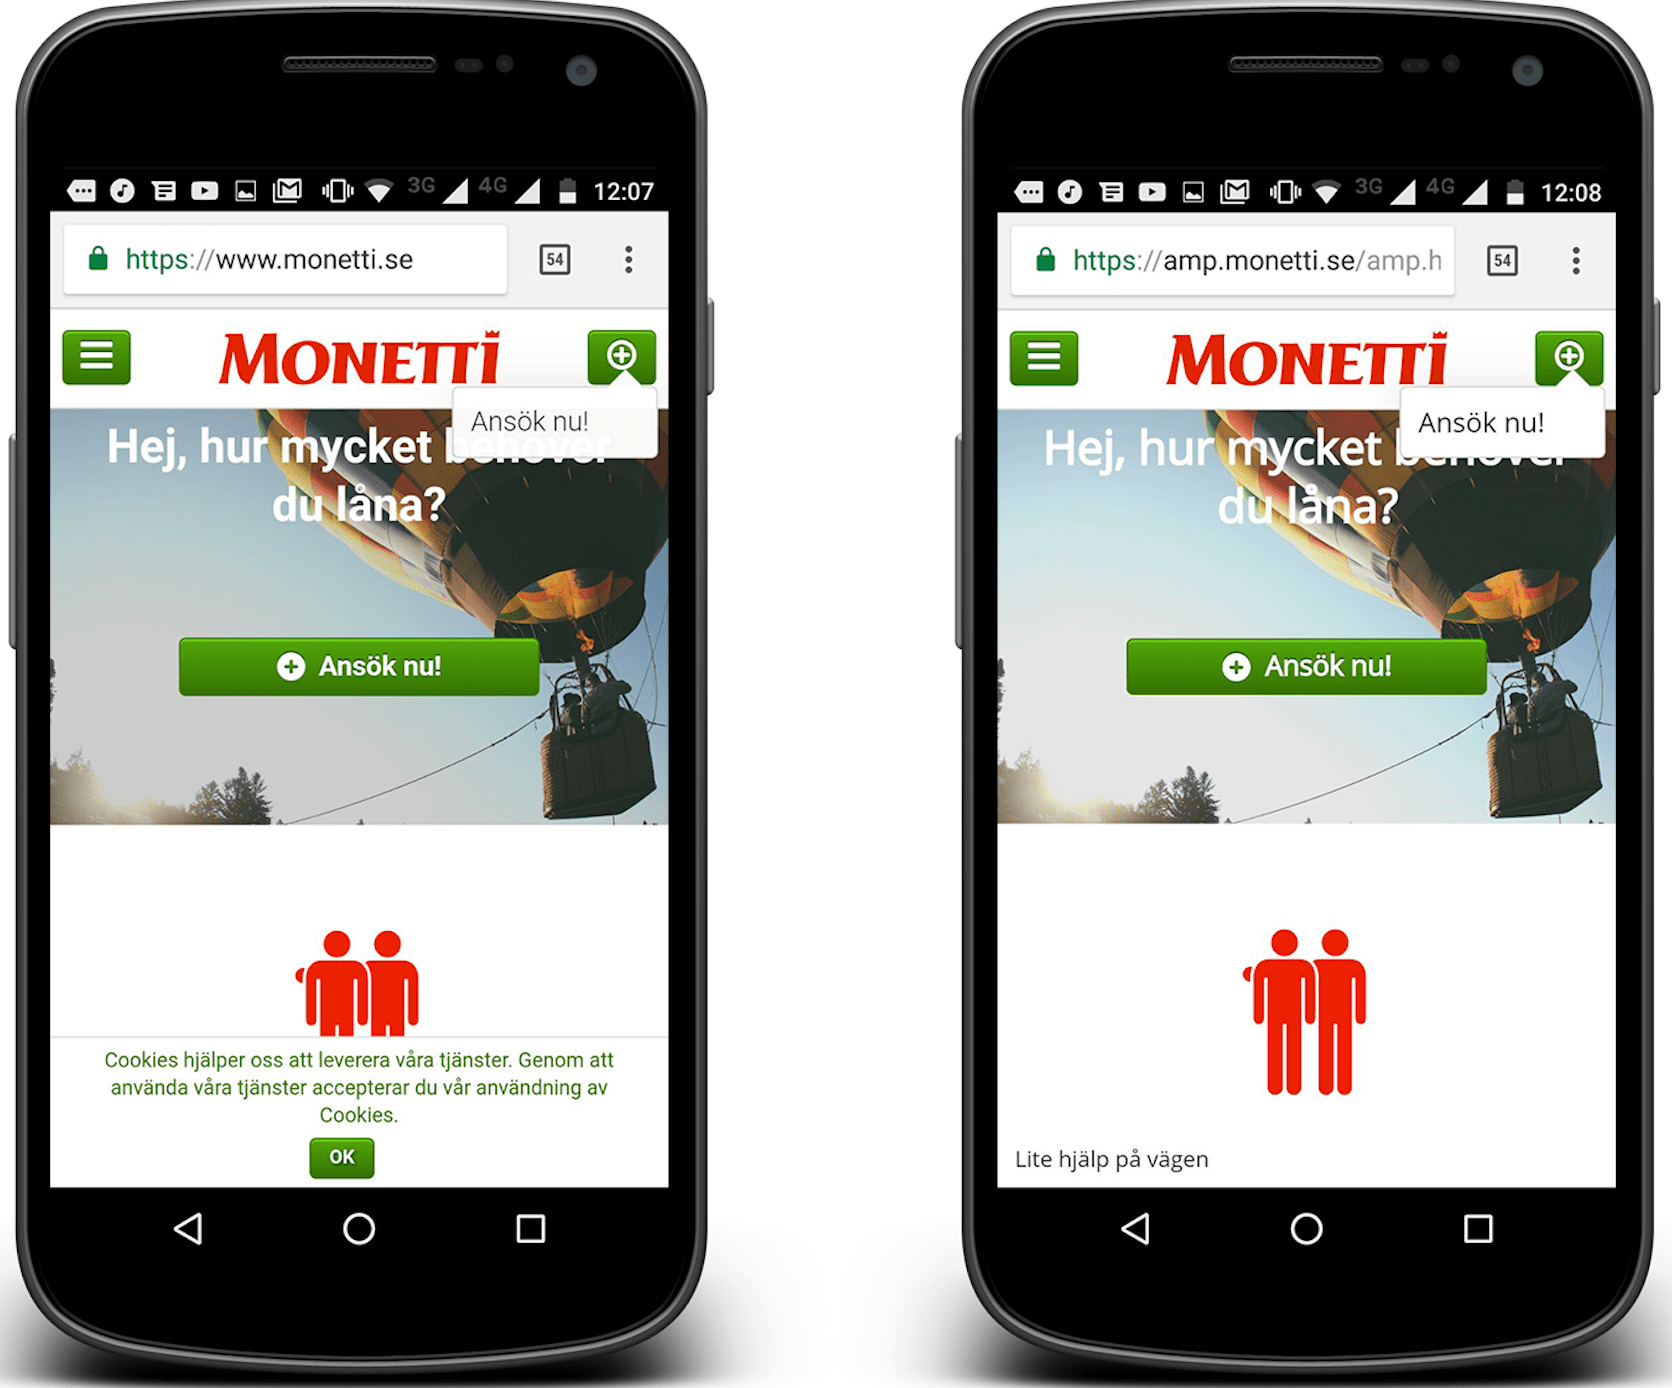 AMPs help Monetti cut page load time by 84%, grow AdWords conversions by 19% img1